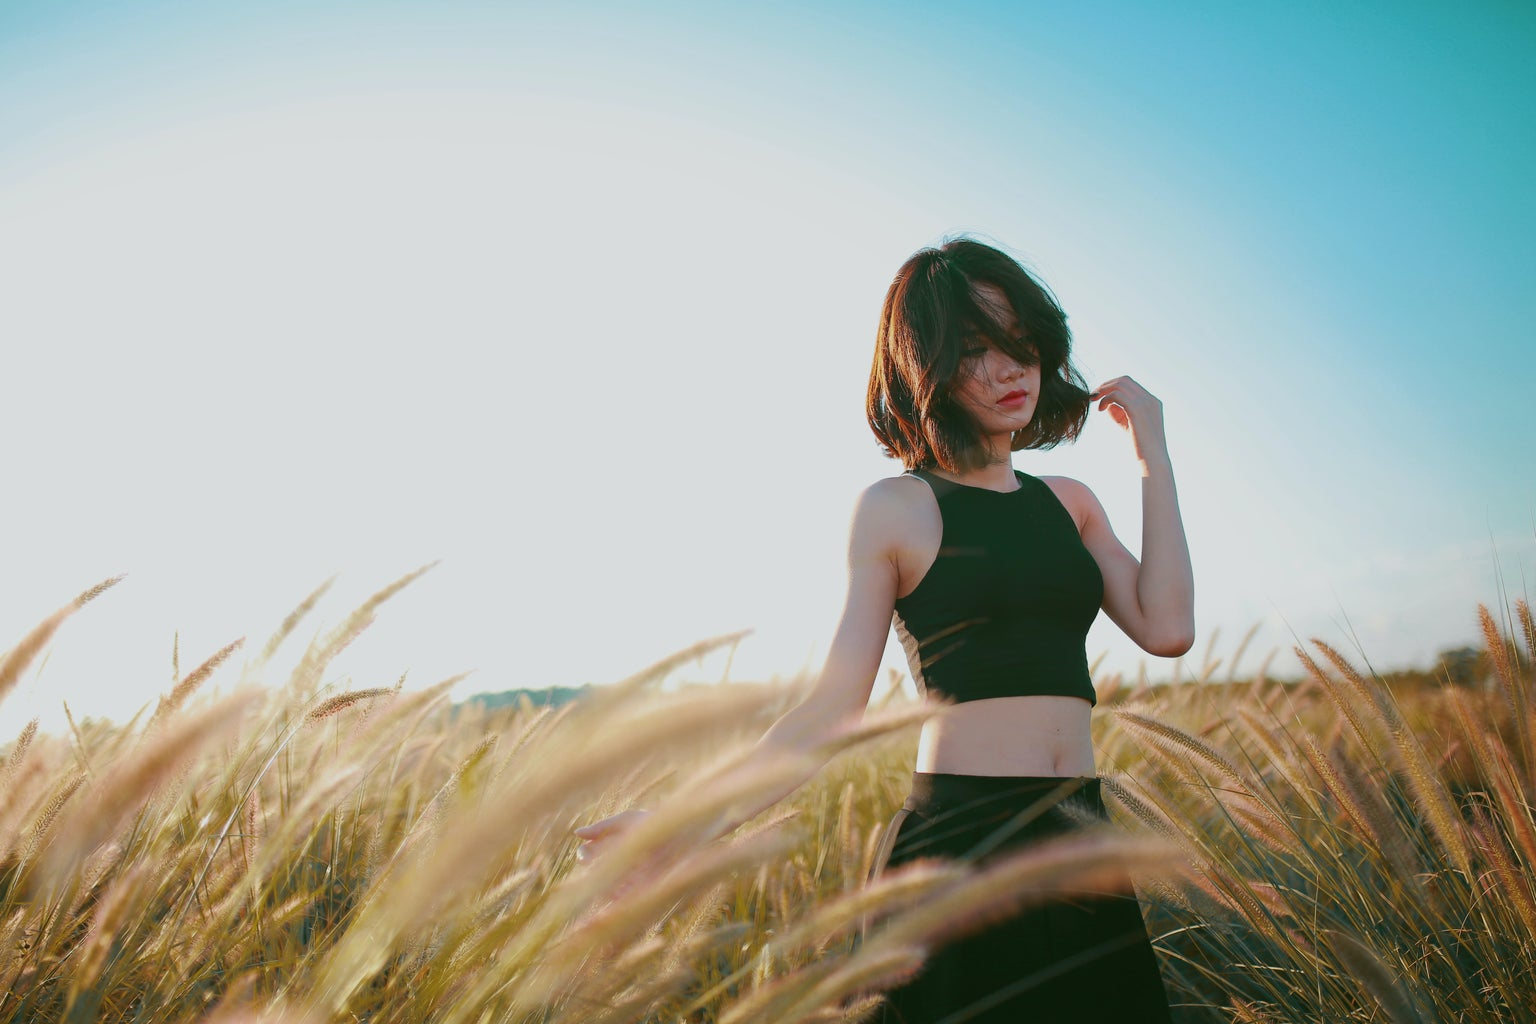 Woman poses in a windy field.